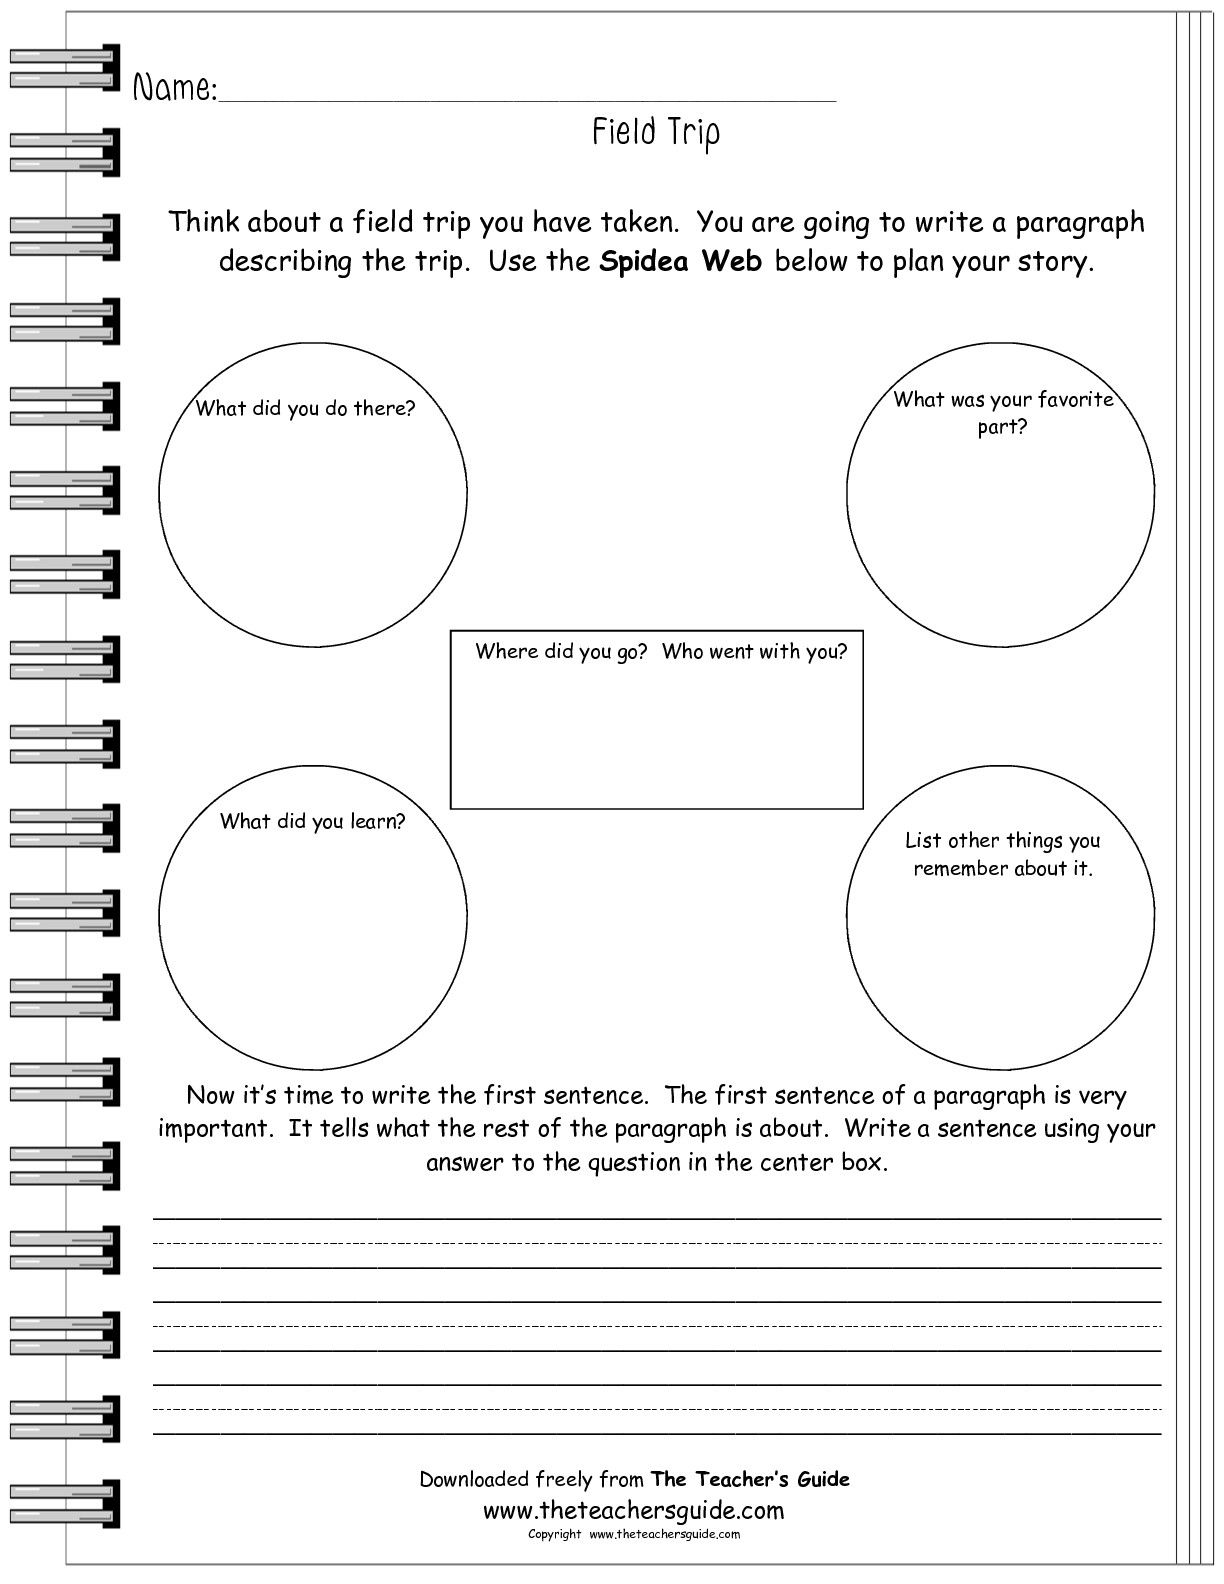 Free Primary Worksheets Math Reading Language